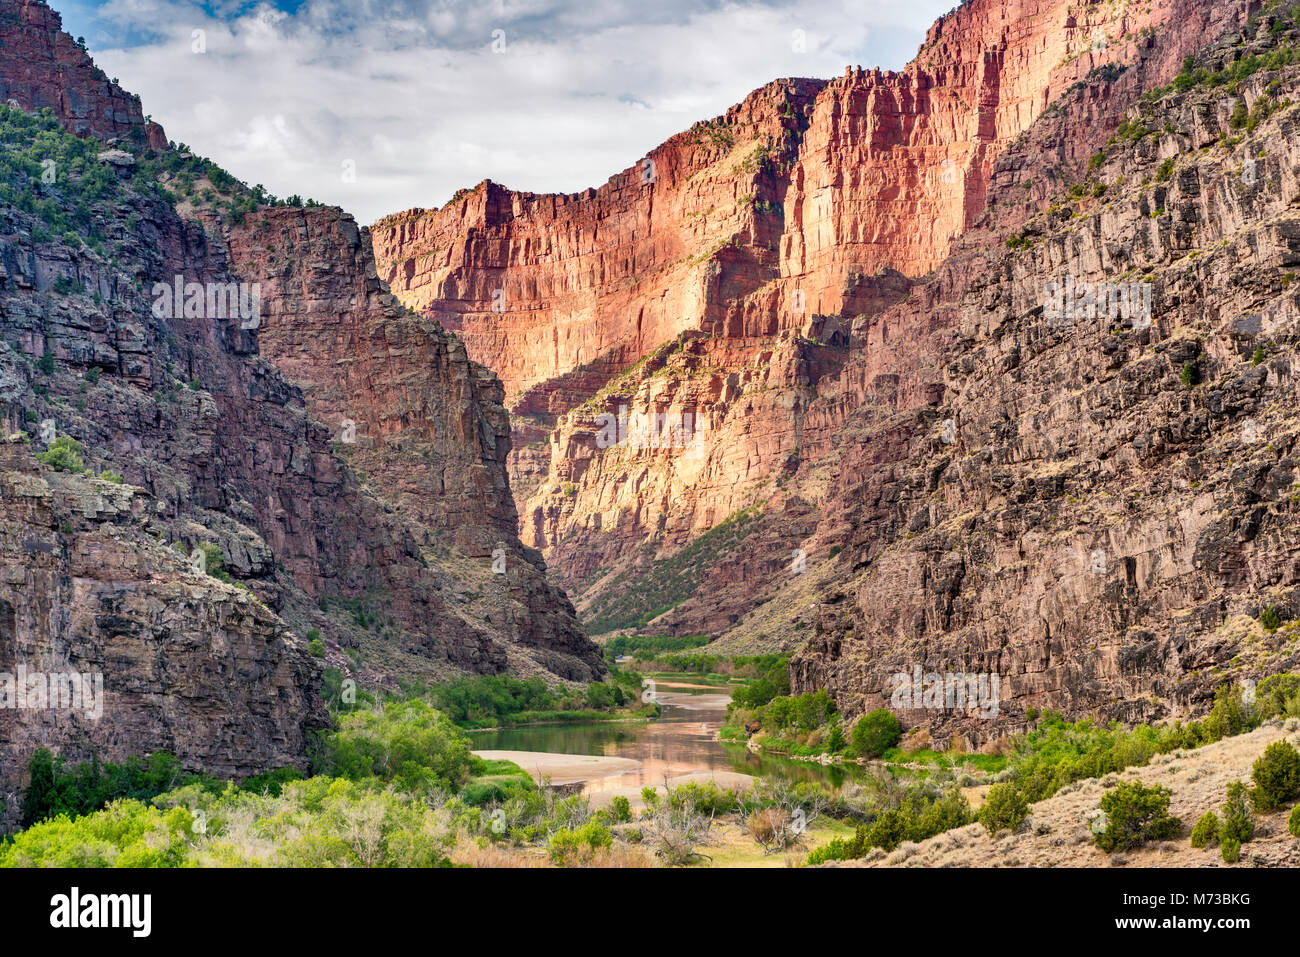 Green River in Canyon of Lodore at Gates of Lodore, Dinosaur National Monument, Colorado, USA - Stock Image